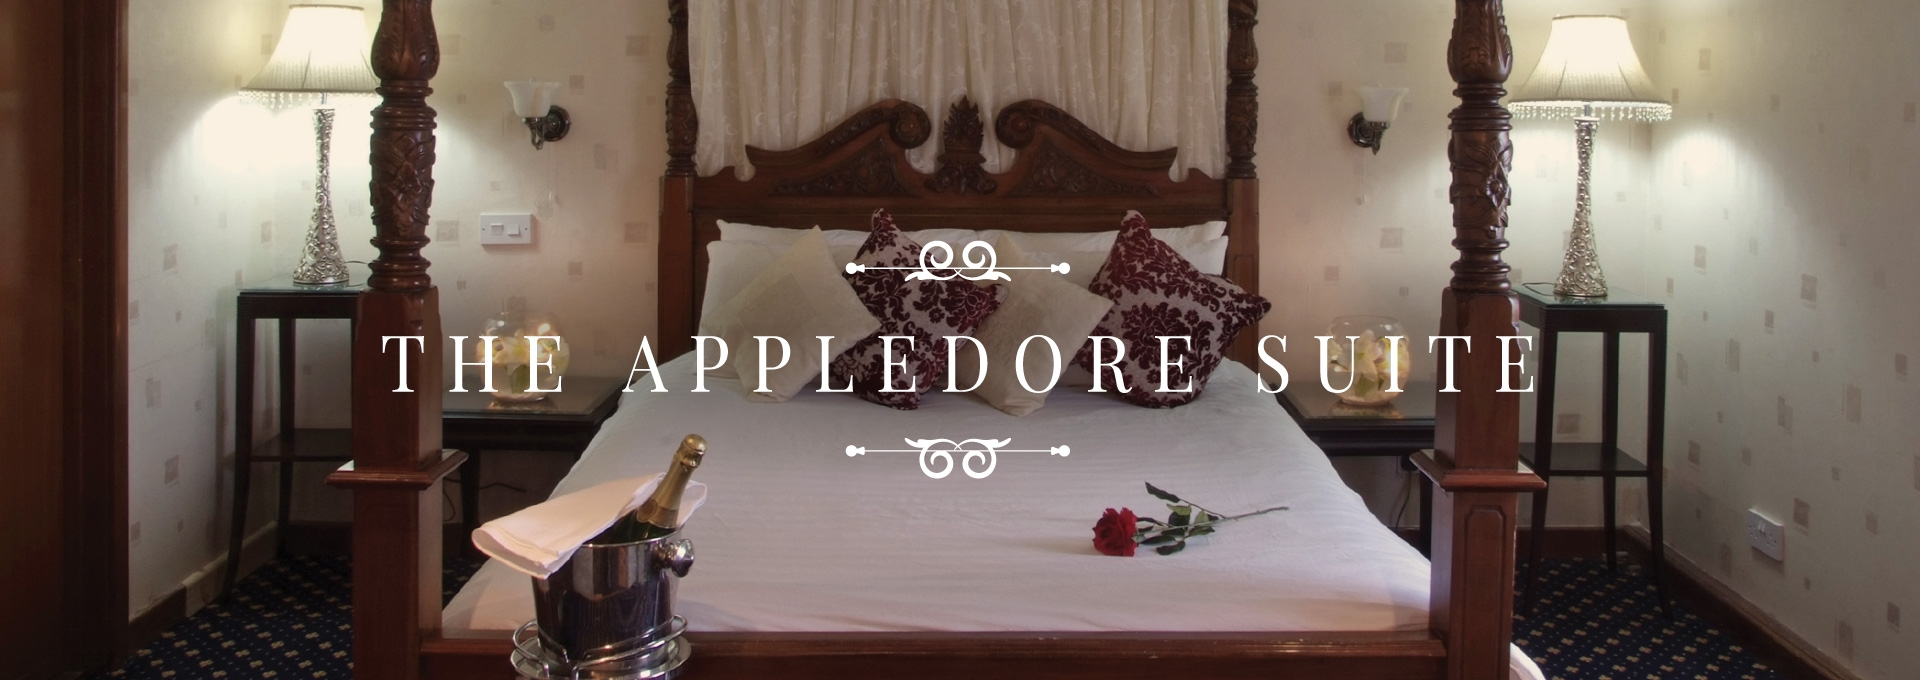 The Appledure Suite at the Durrant House Hotel